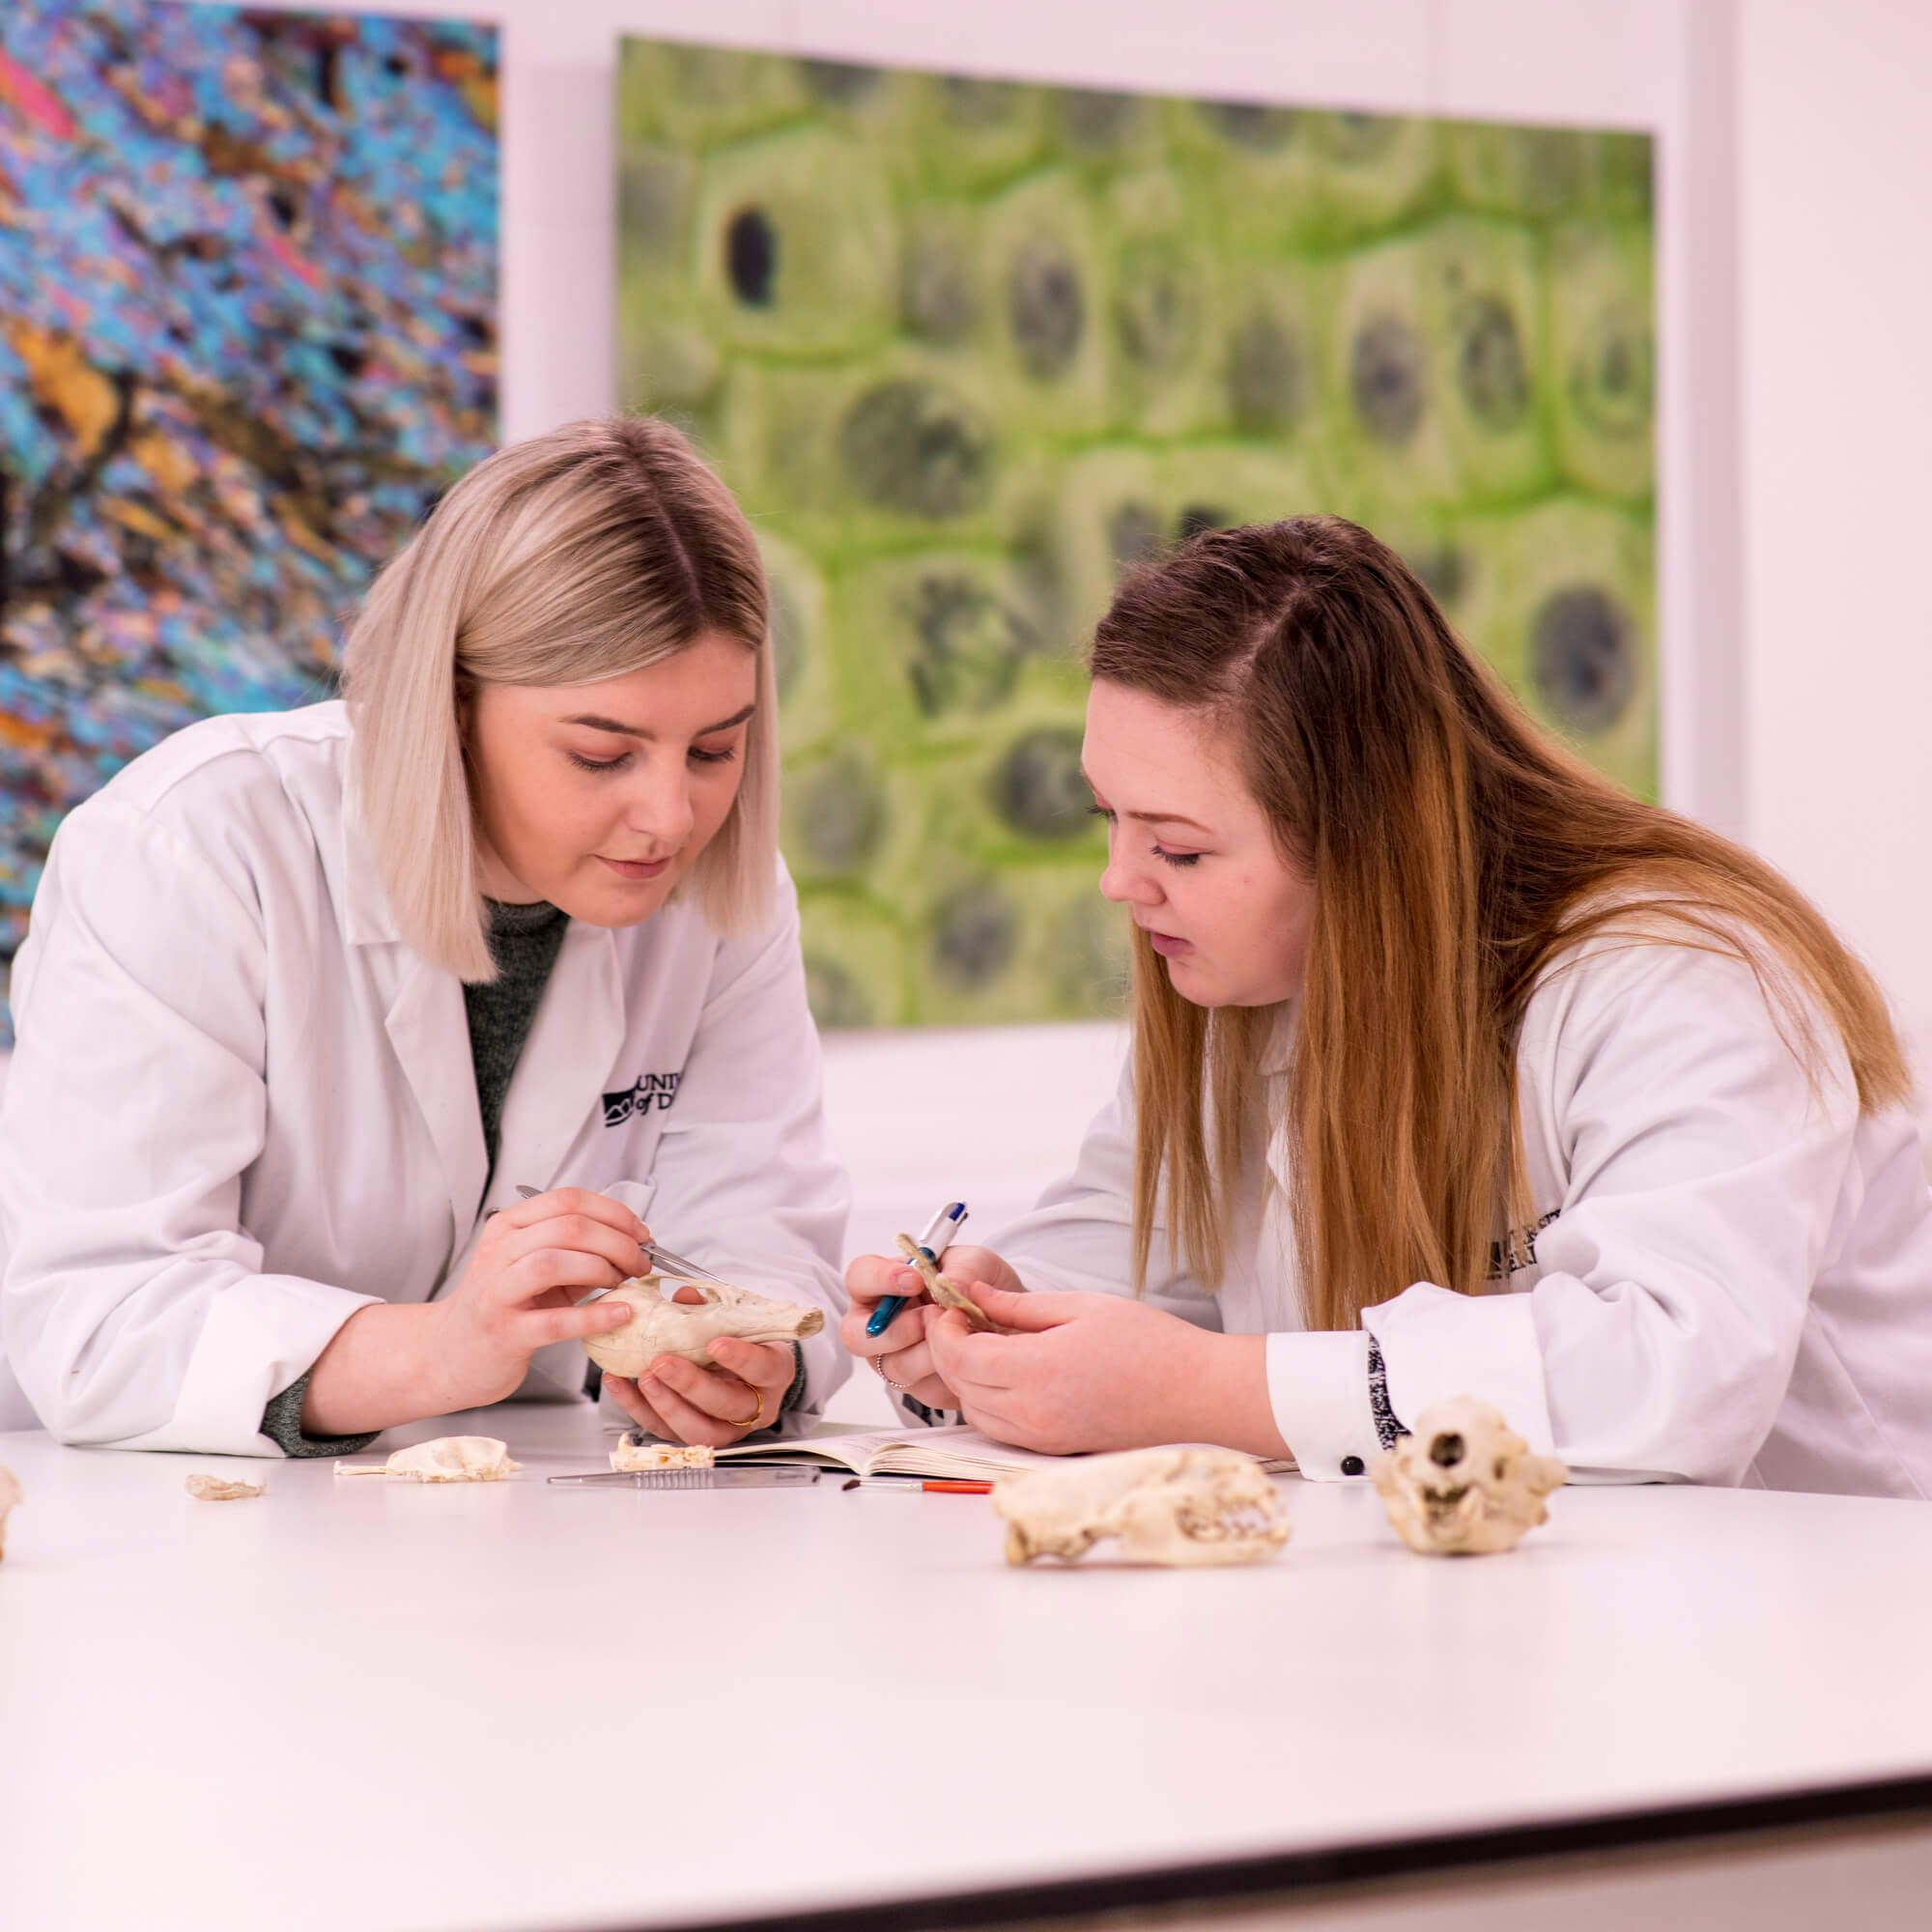 Two female students in a lab looking at animal skeletons